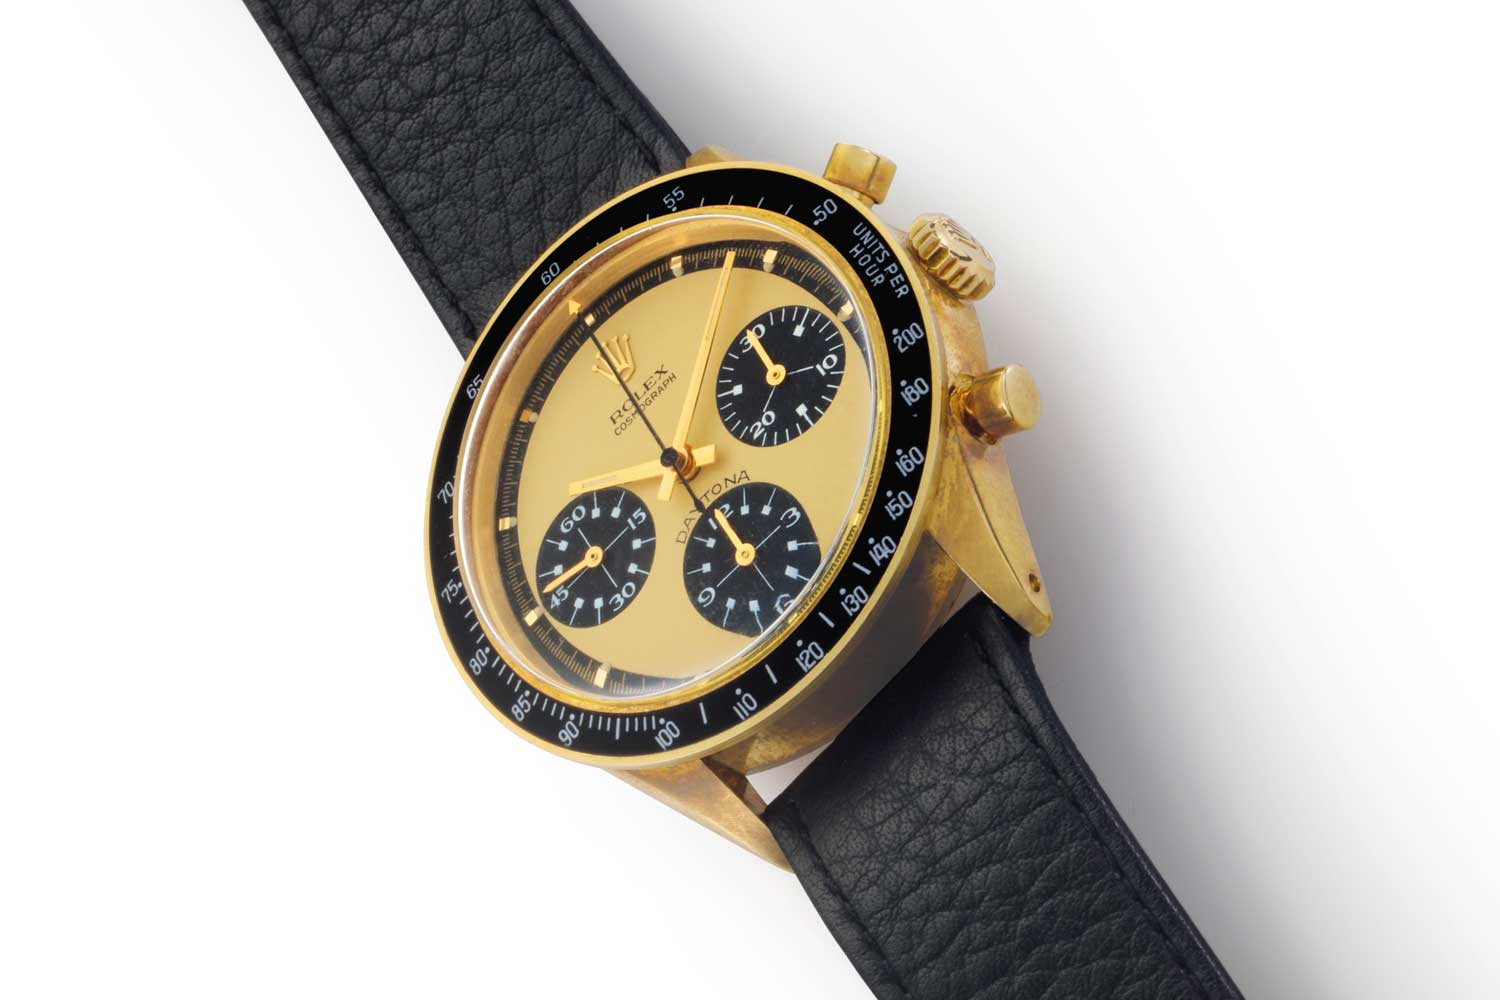 Ref. 6264 Gold Paul Newman Daytona with